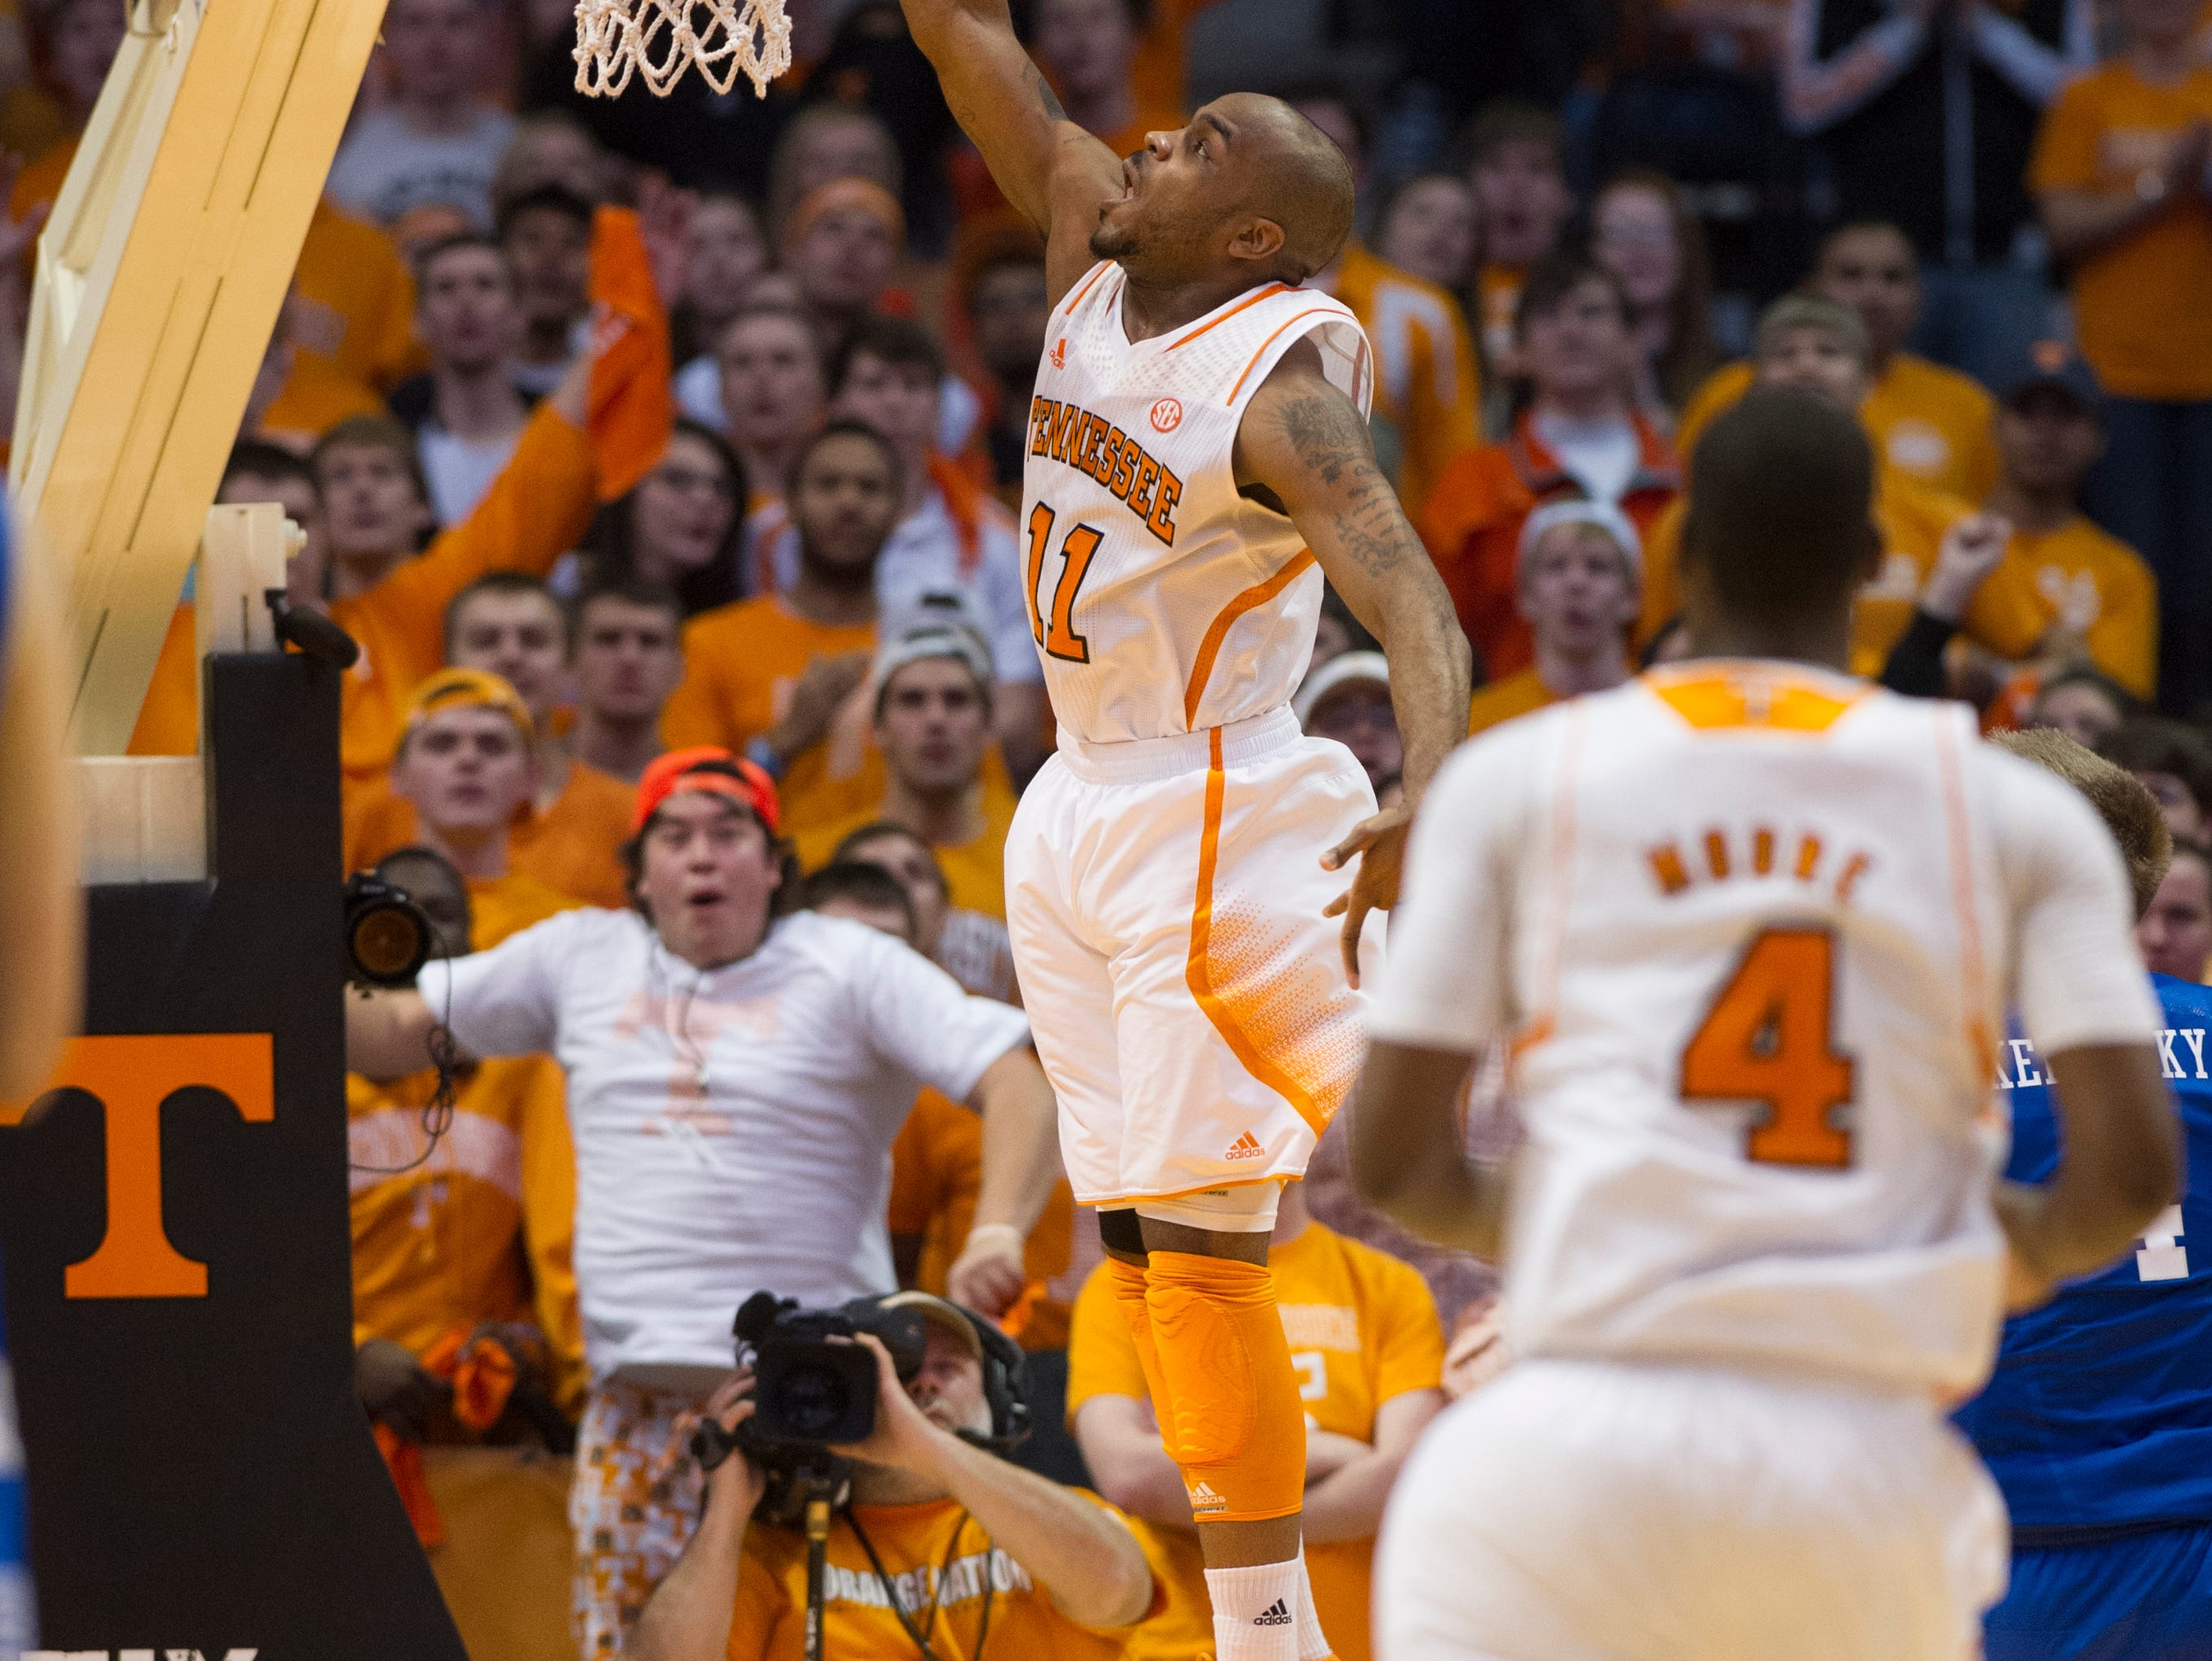 Tennessee guard Trae Golden (11) shoots a layup on a breakaway play during the second half against Kentucky at Thompson-Boling Arena Saturday, Feb. 16, 2013. Tennessee won 88-58 over Kentucky.